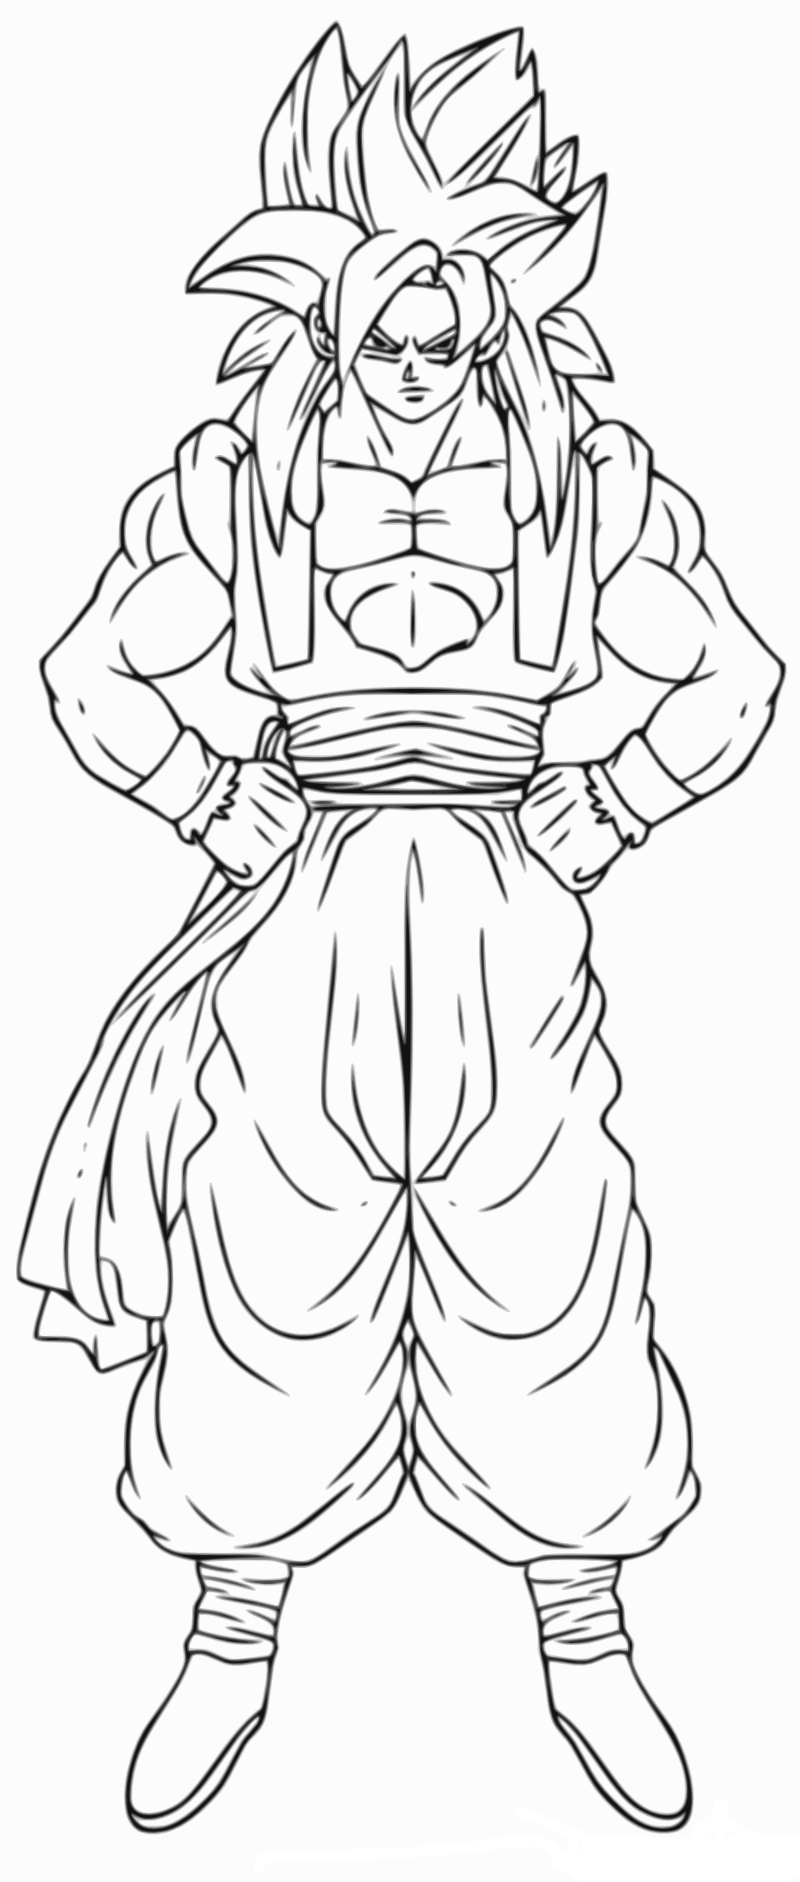 Coloriage gogeta dragon ball z imprimer et colorier - Dessin de dragon ball super ...